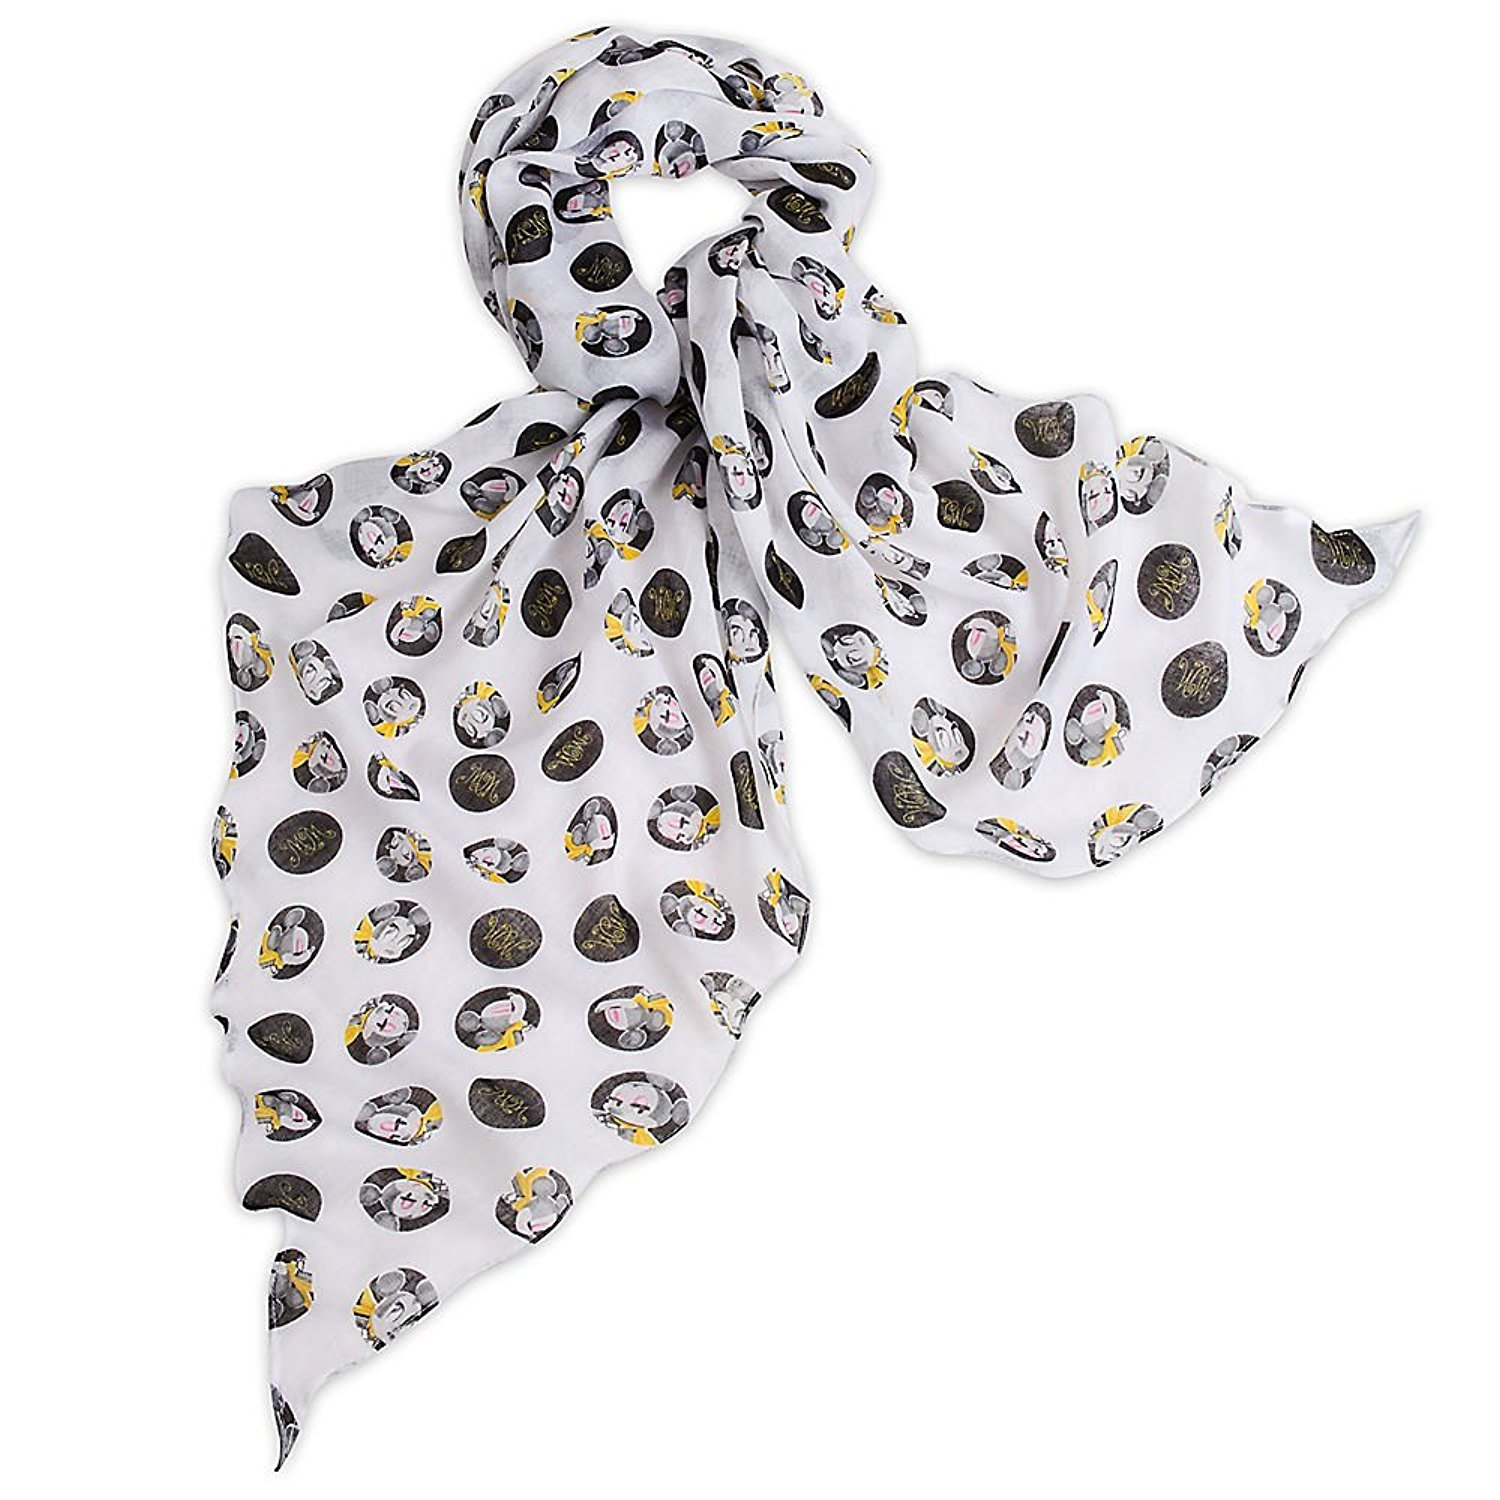 Disney Minnie Mouse Scarf - Signature Collection White 427502323619